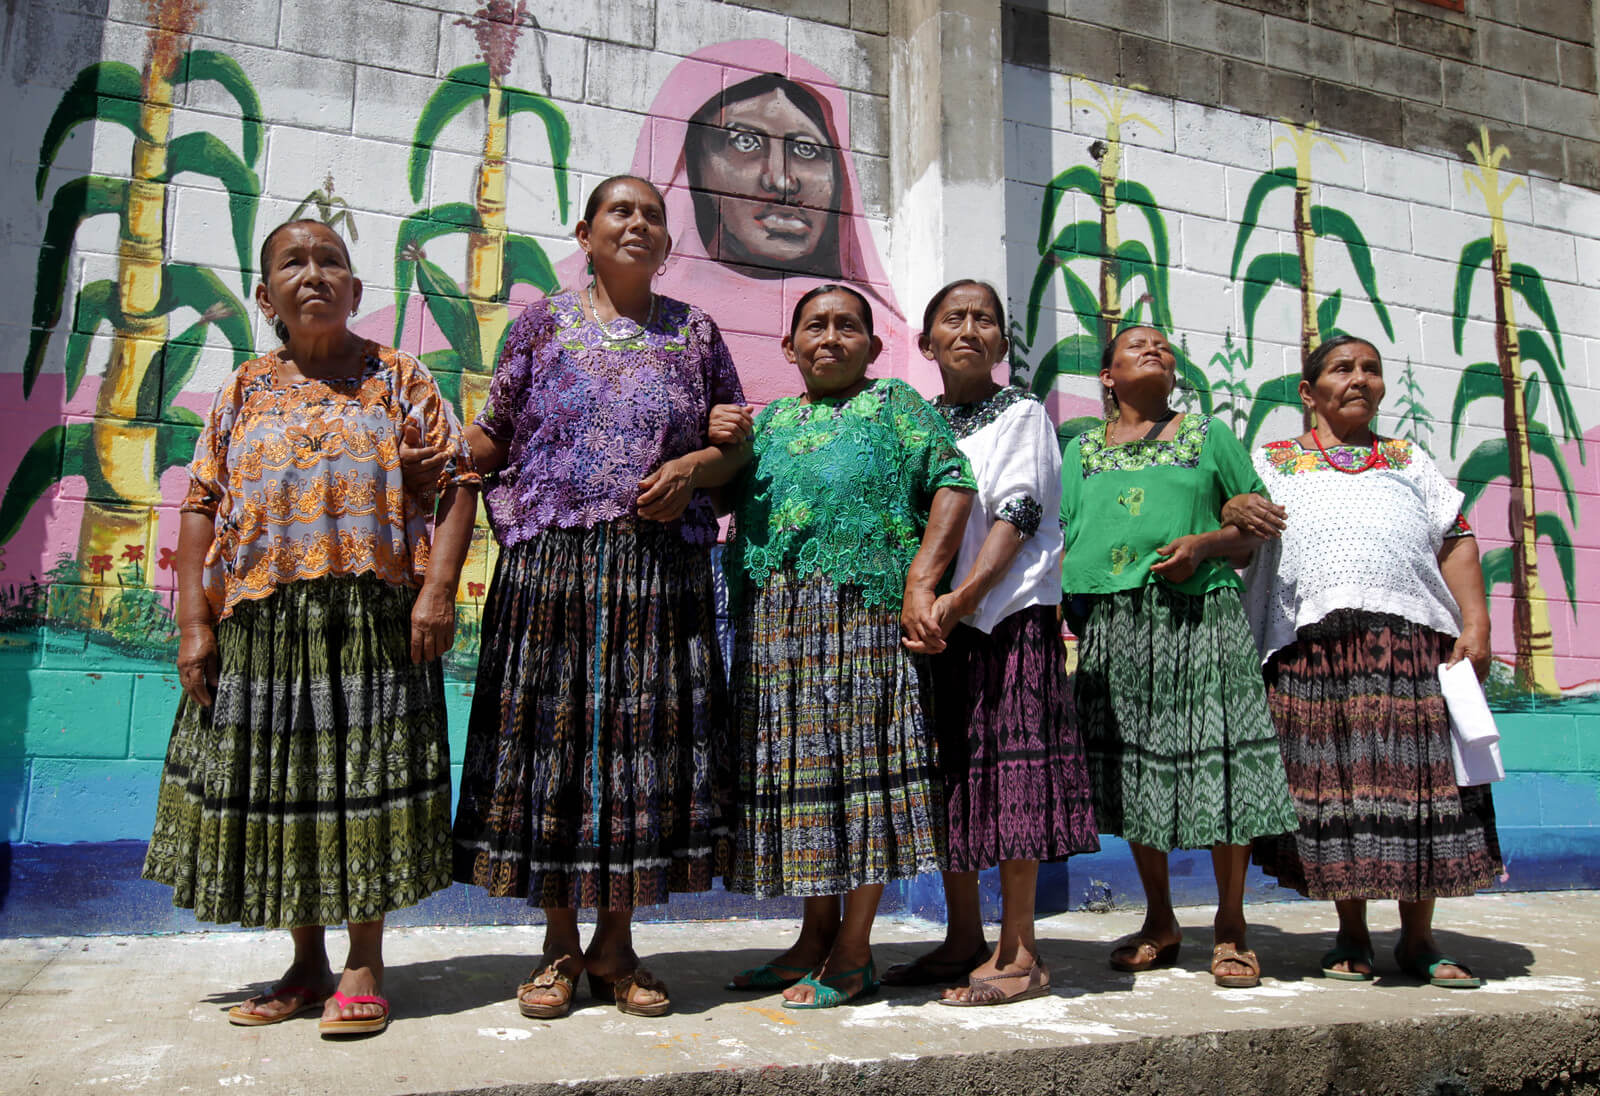 Some of the Maya Q'eqchi' women of Sepur Zarco in Guatemala who experienced sexual violence and sexual slavery at the hands of the military in the 1980s. After fighting for justice for decades, a landmark legal ruling in 2016 found two military commanders guilty of committing crimes against humanity. Photo: Mark Stedman / Trócaire.